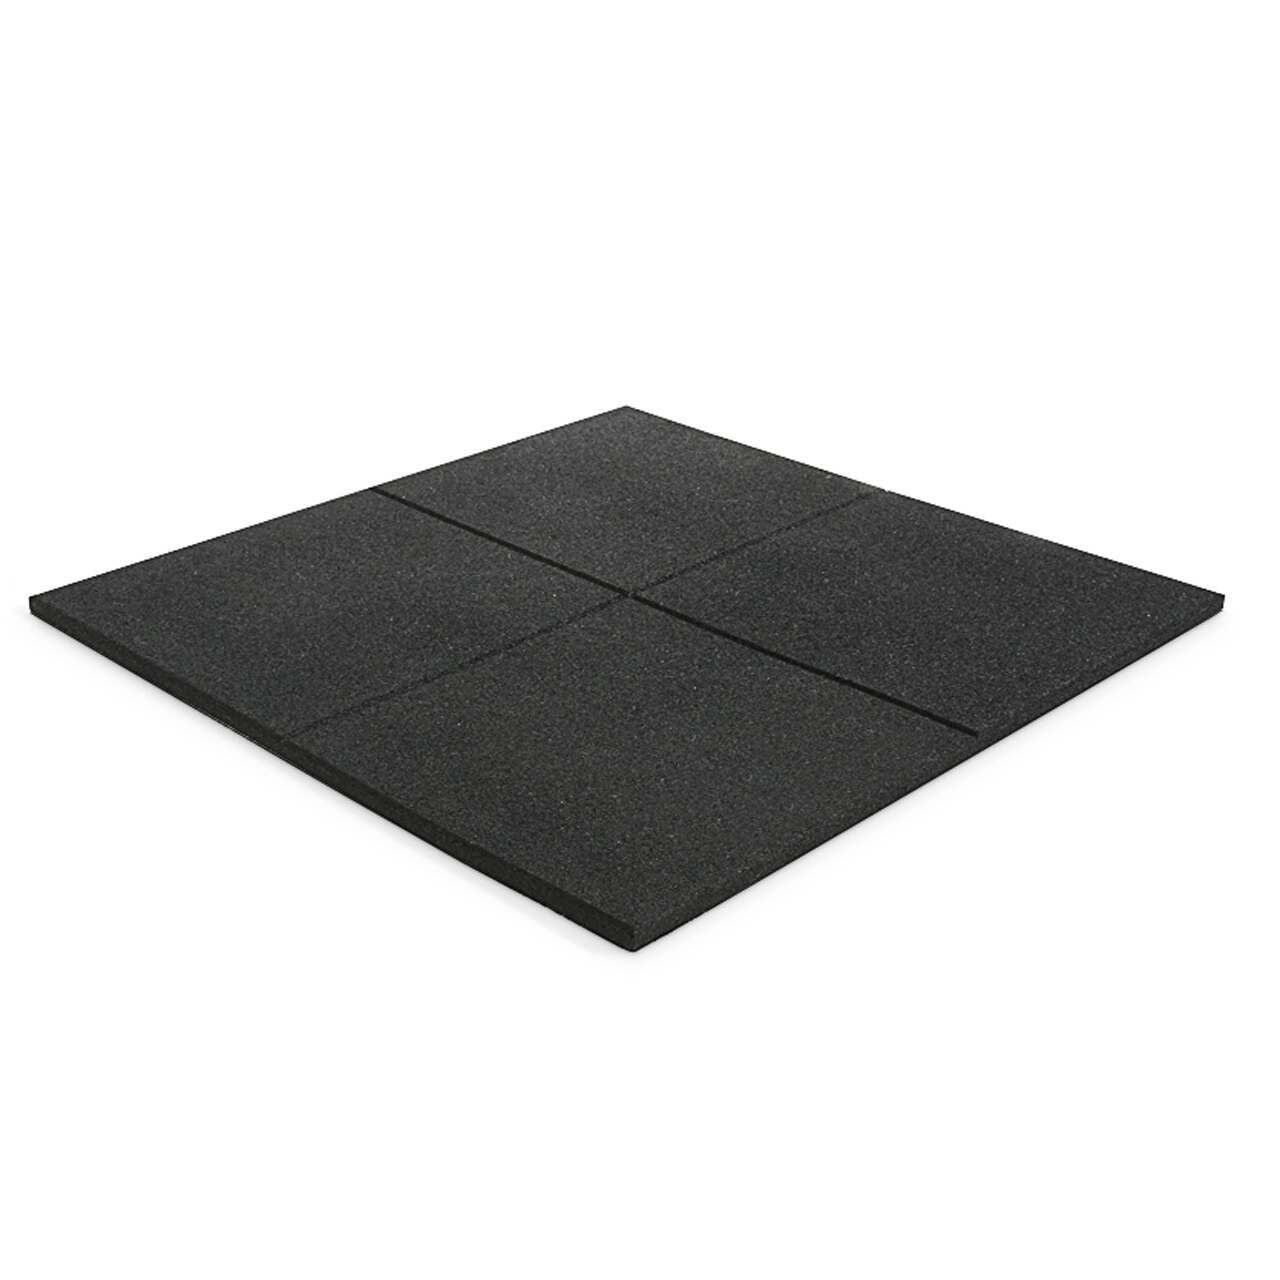 METIS Rubber Gym Flooring Mats